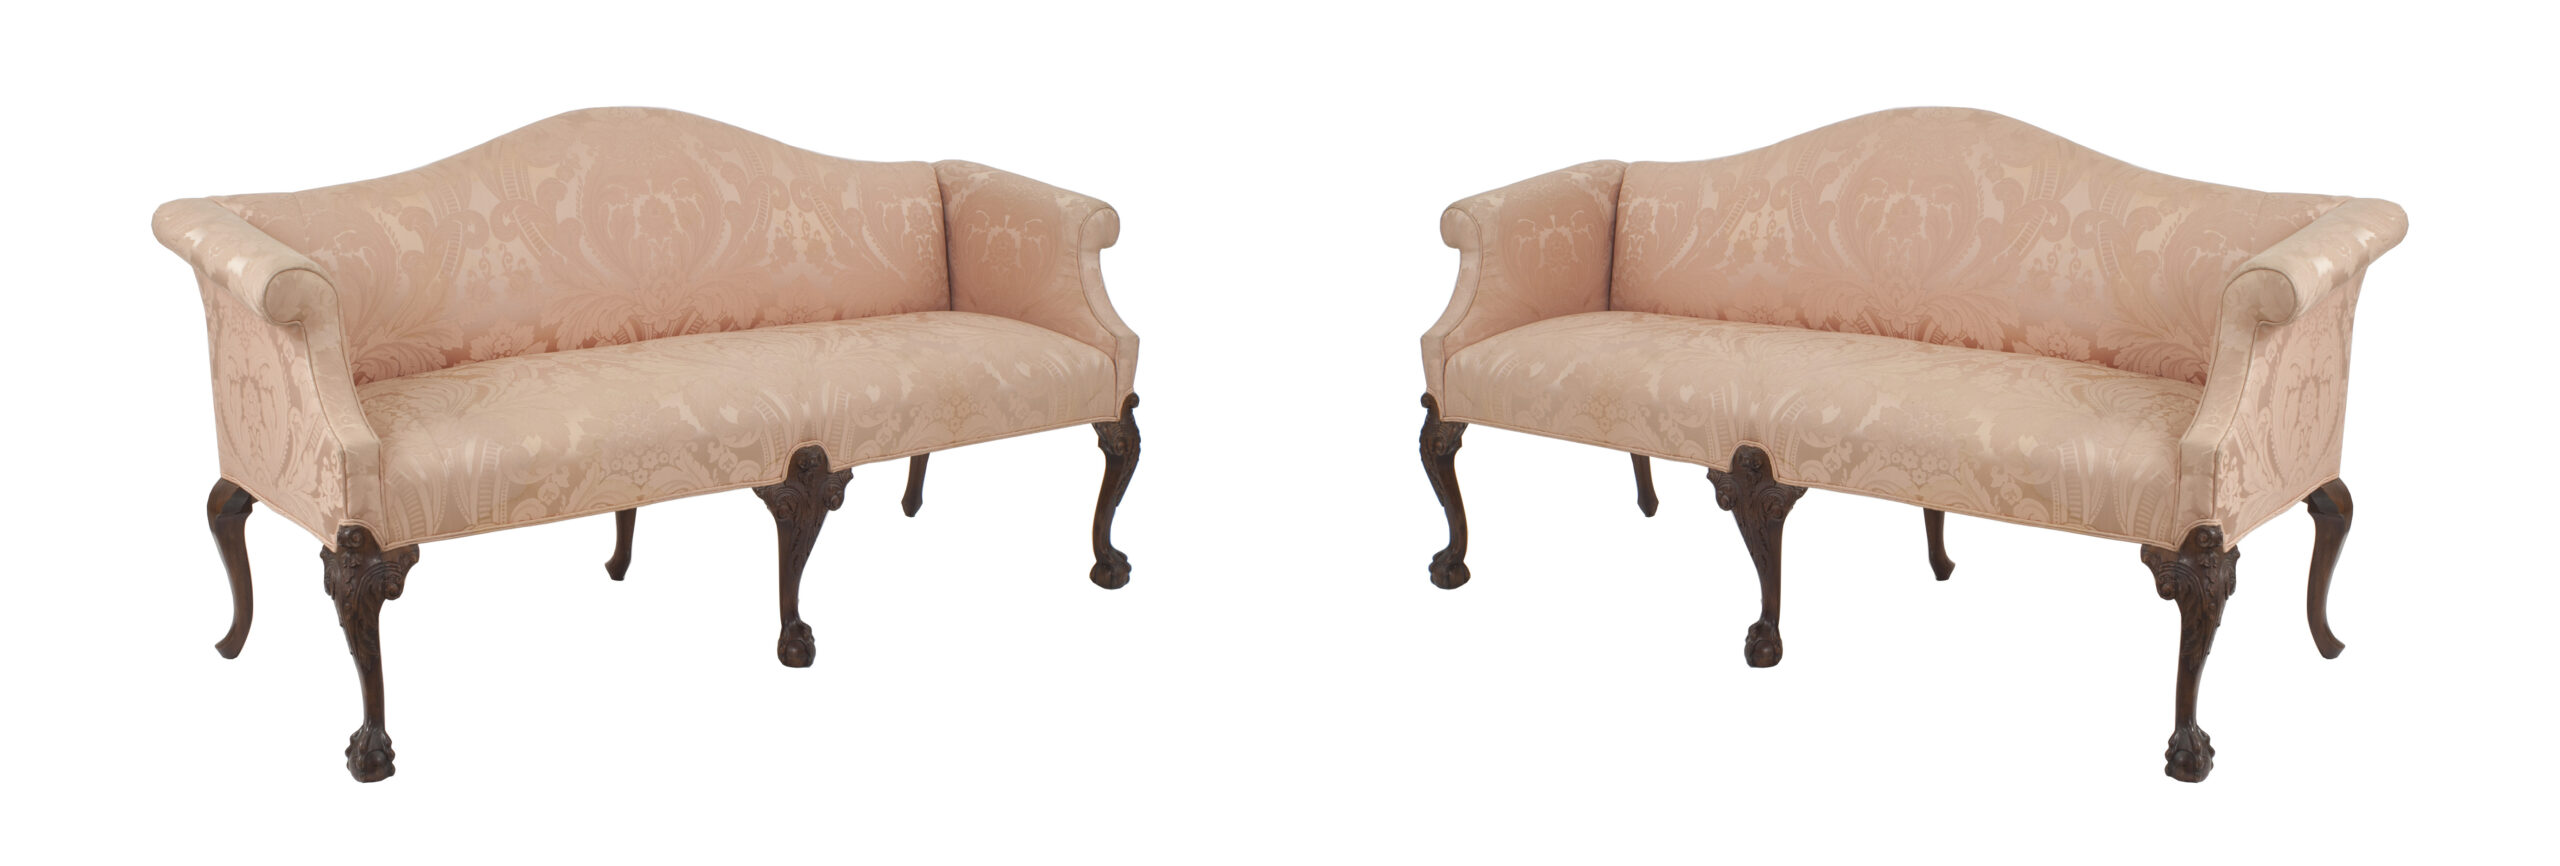 Full Size of Chippendale Sofa Furniture For Sale Uk Table Lane Sofas Ethan Allen Slipcover Style Reproduction History Cover Mit Bettfunktion Federkern L Schlaffunktion Sofa Chippendale Sofa